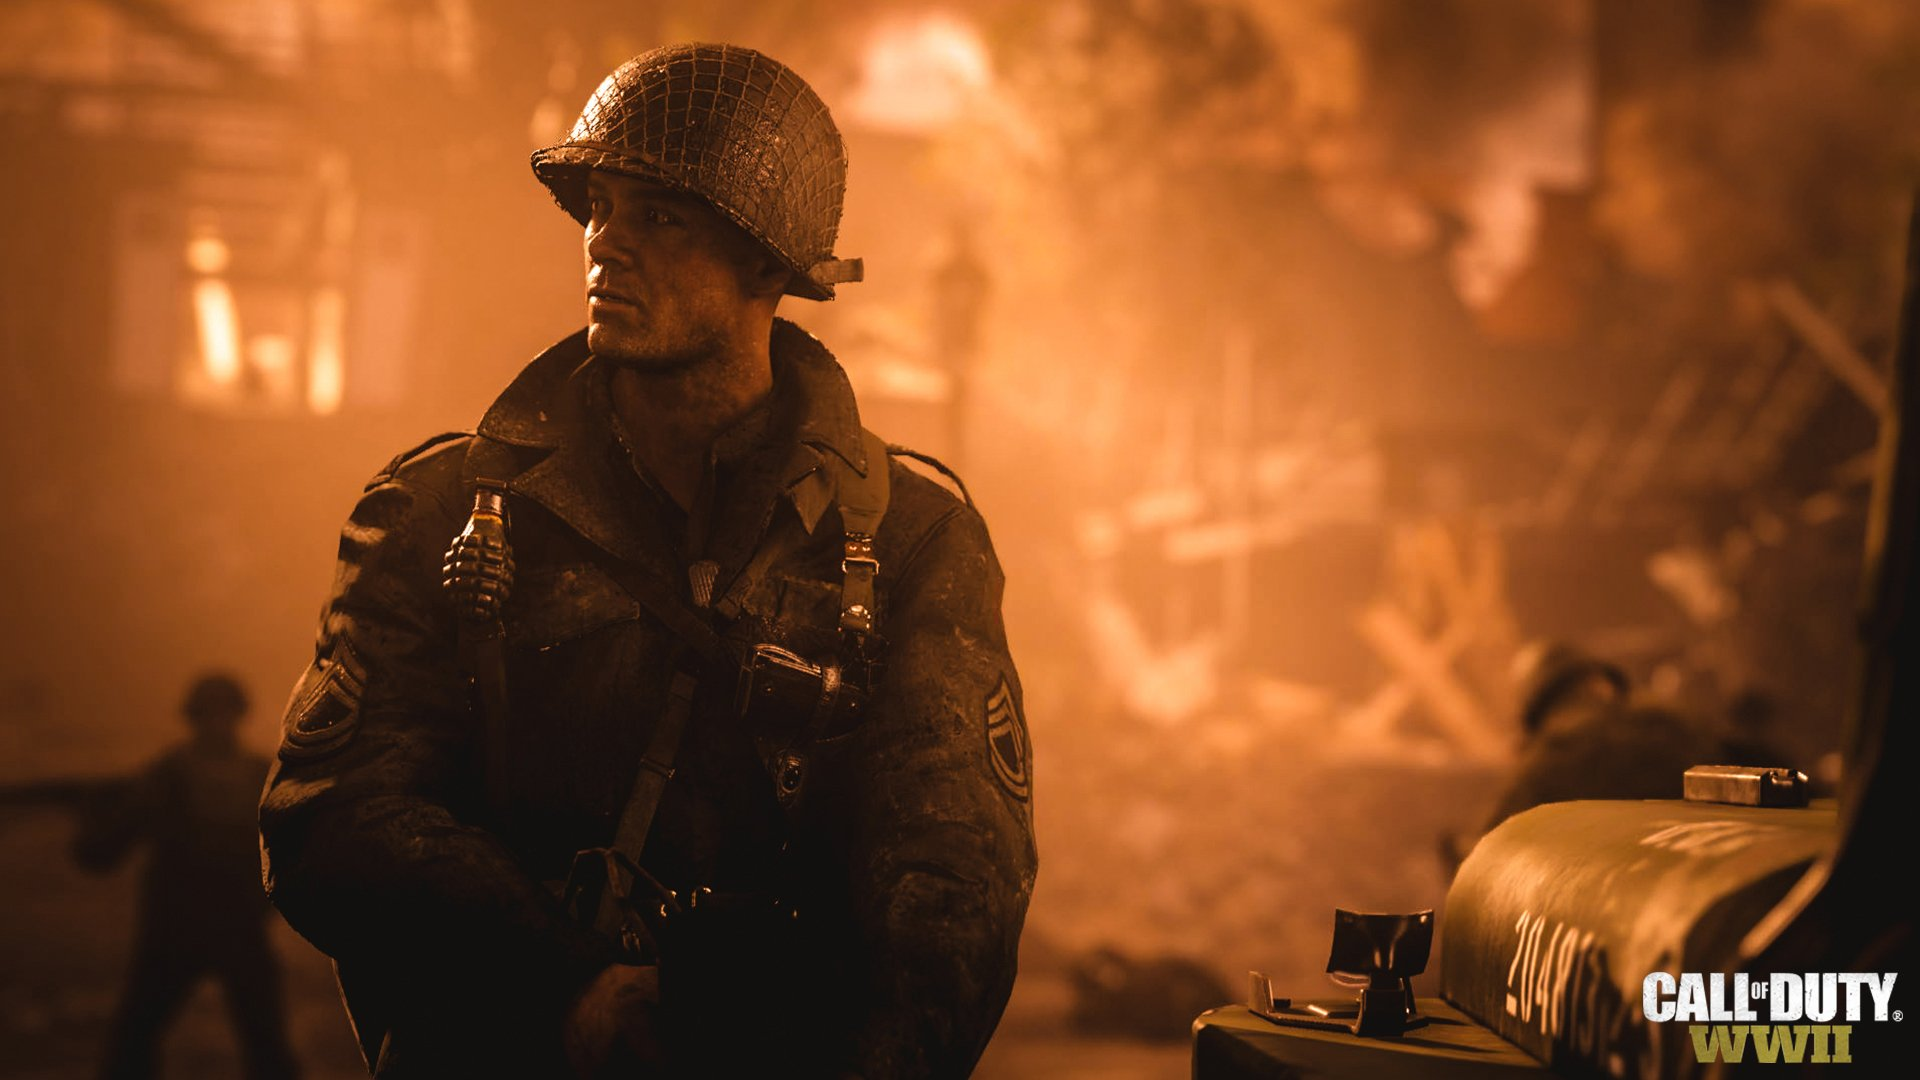 Call of duty wwii activision playstation 4 047875881525 call of duty wwii activision playstation 4 047875881525 walmart fandeluxe Gallery